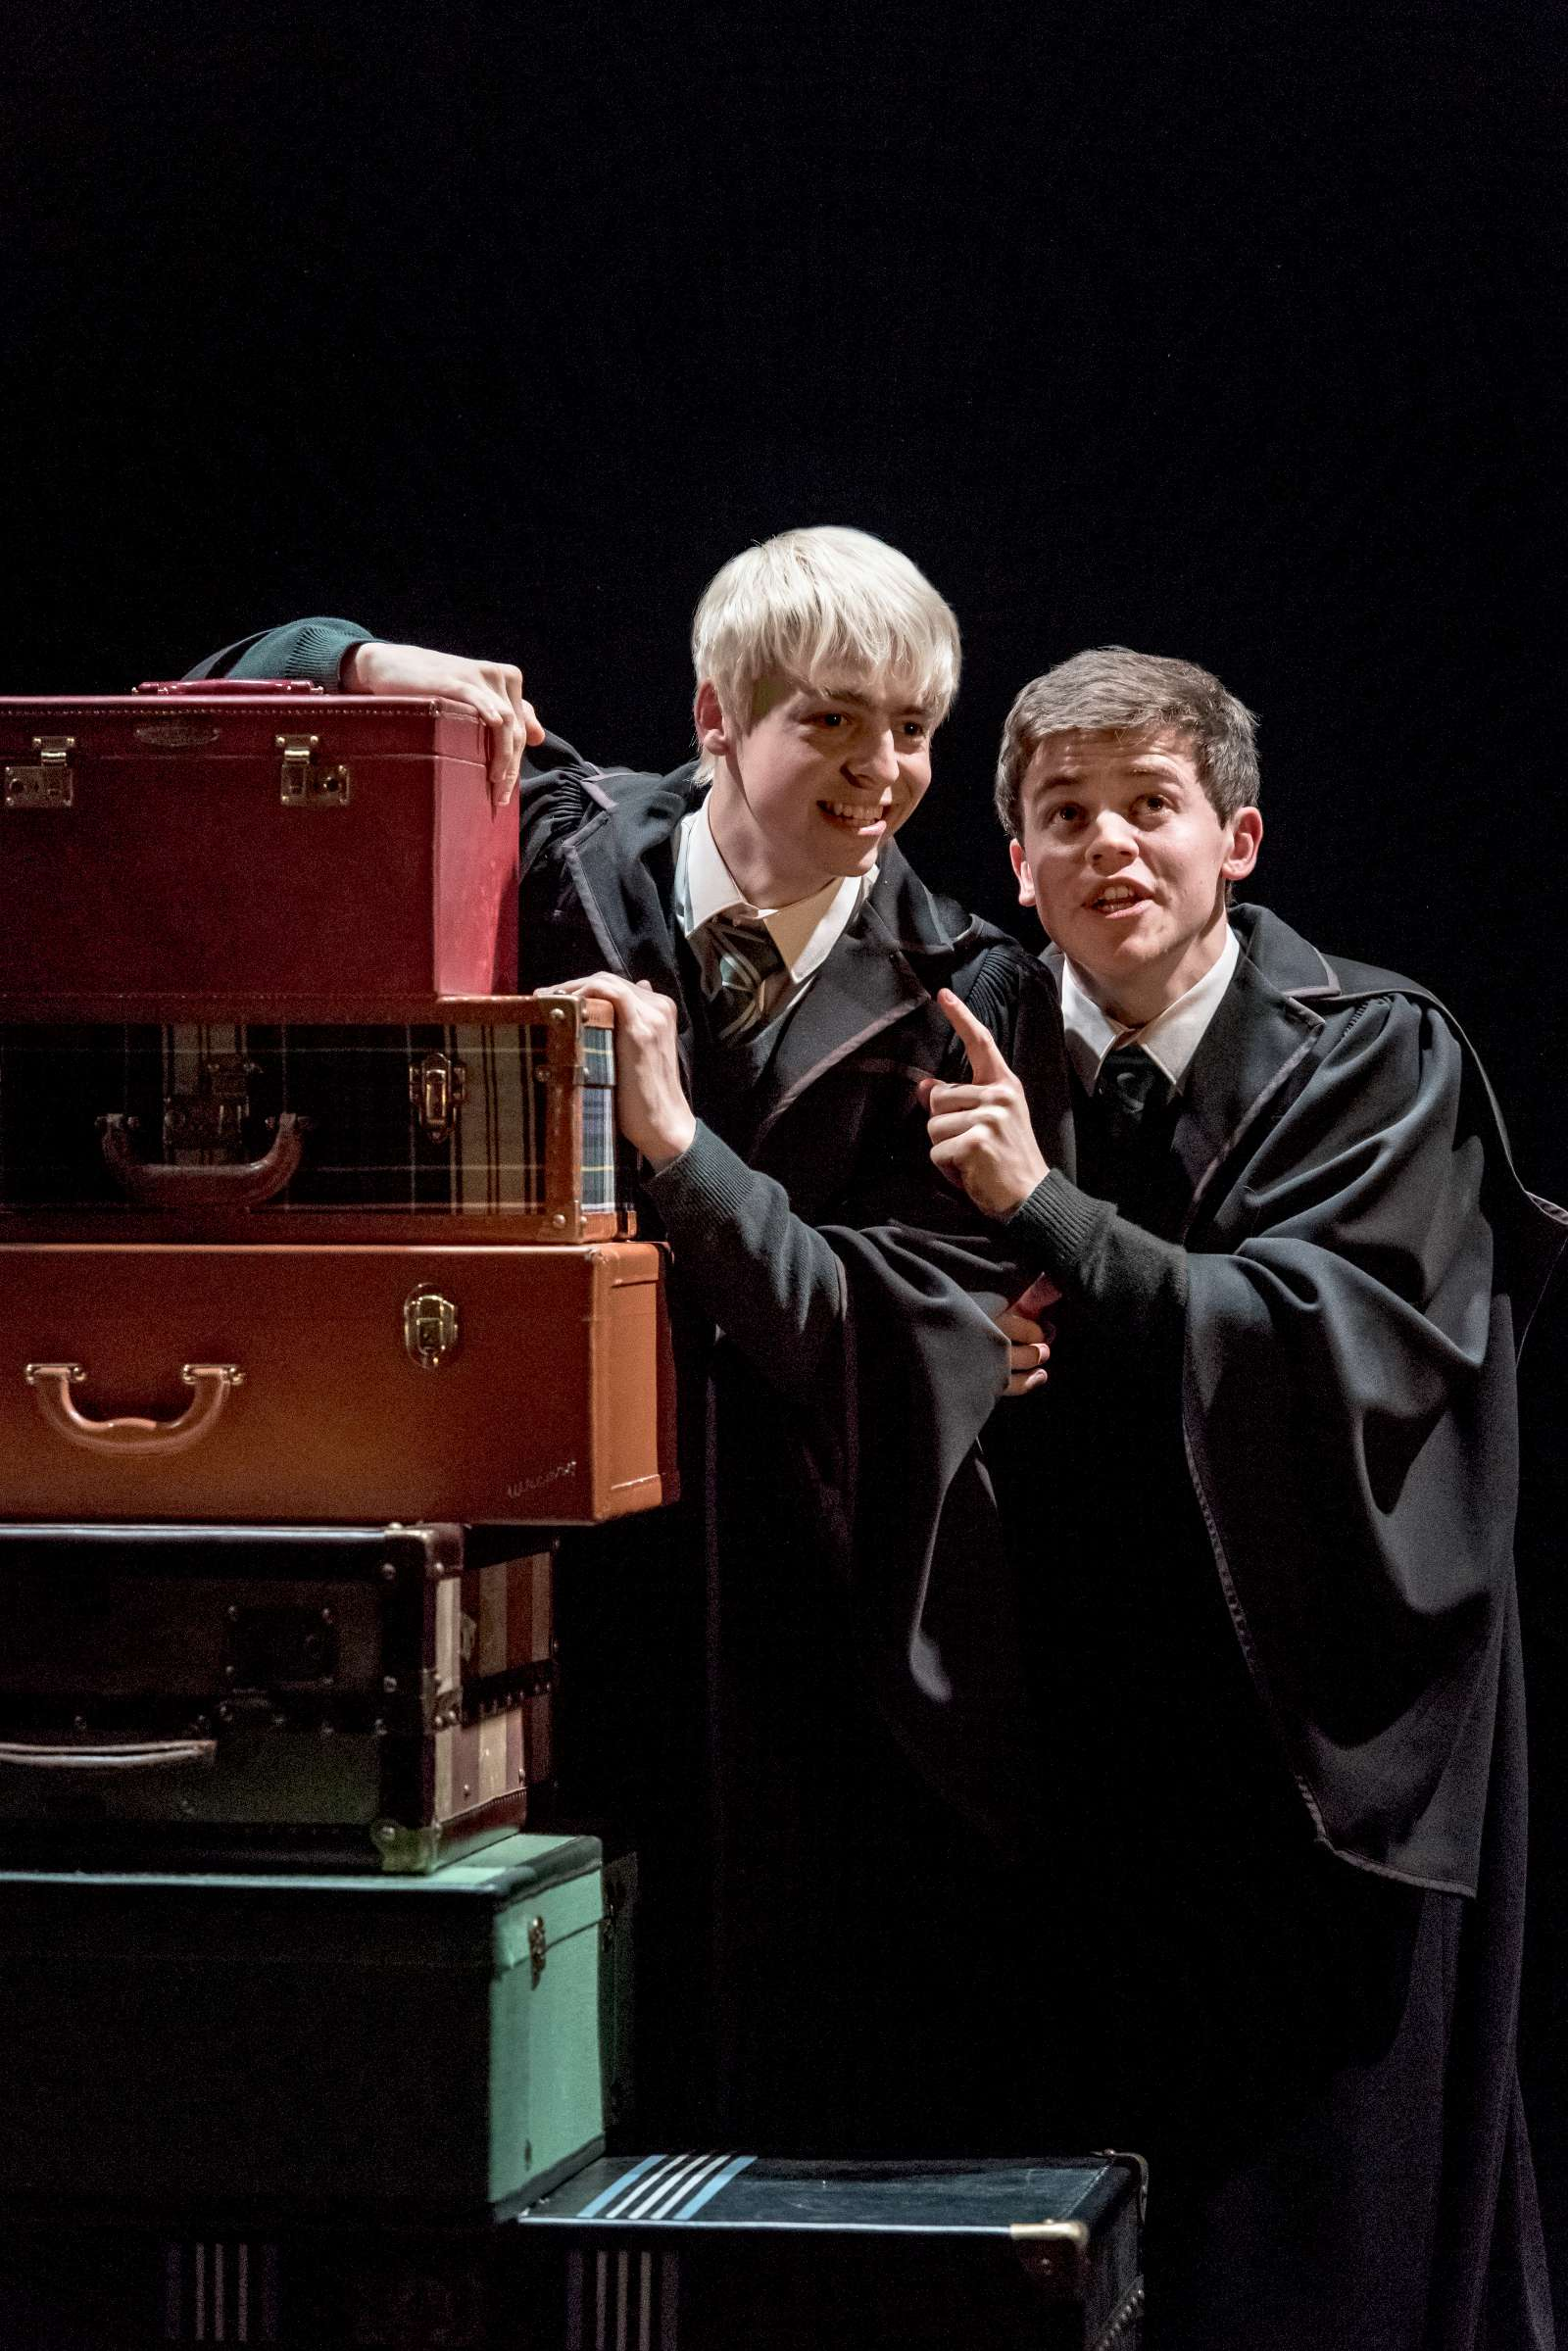 Anthony Boyle e Sam Clemmett interpretam Escórpio Malfoy e Alvo Severo Potter em Hary Potter and the Cursed Child.